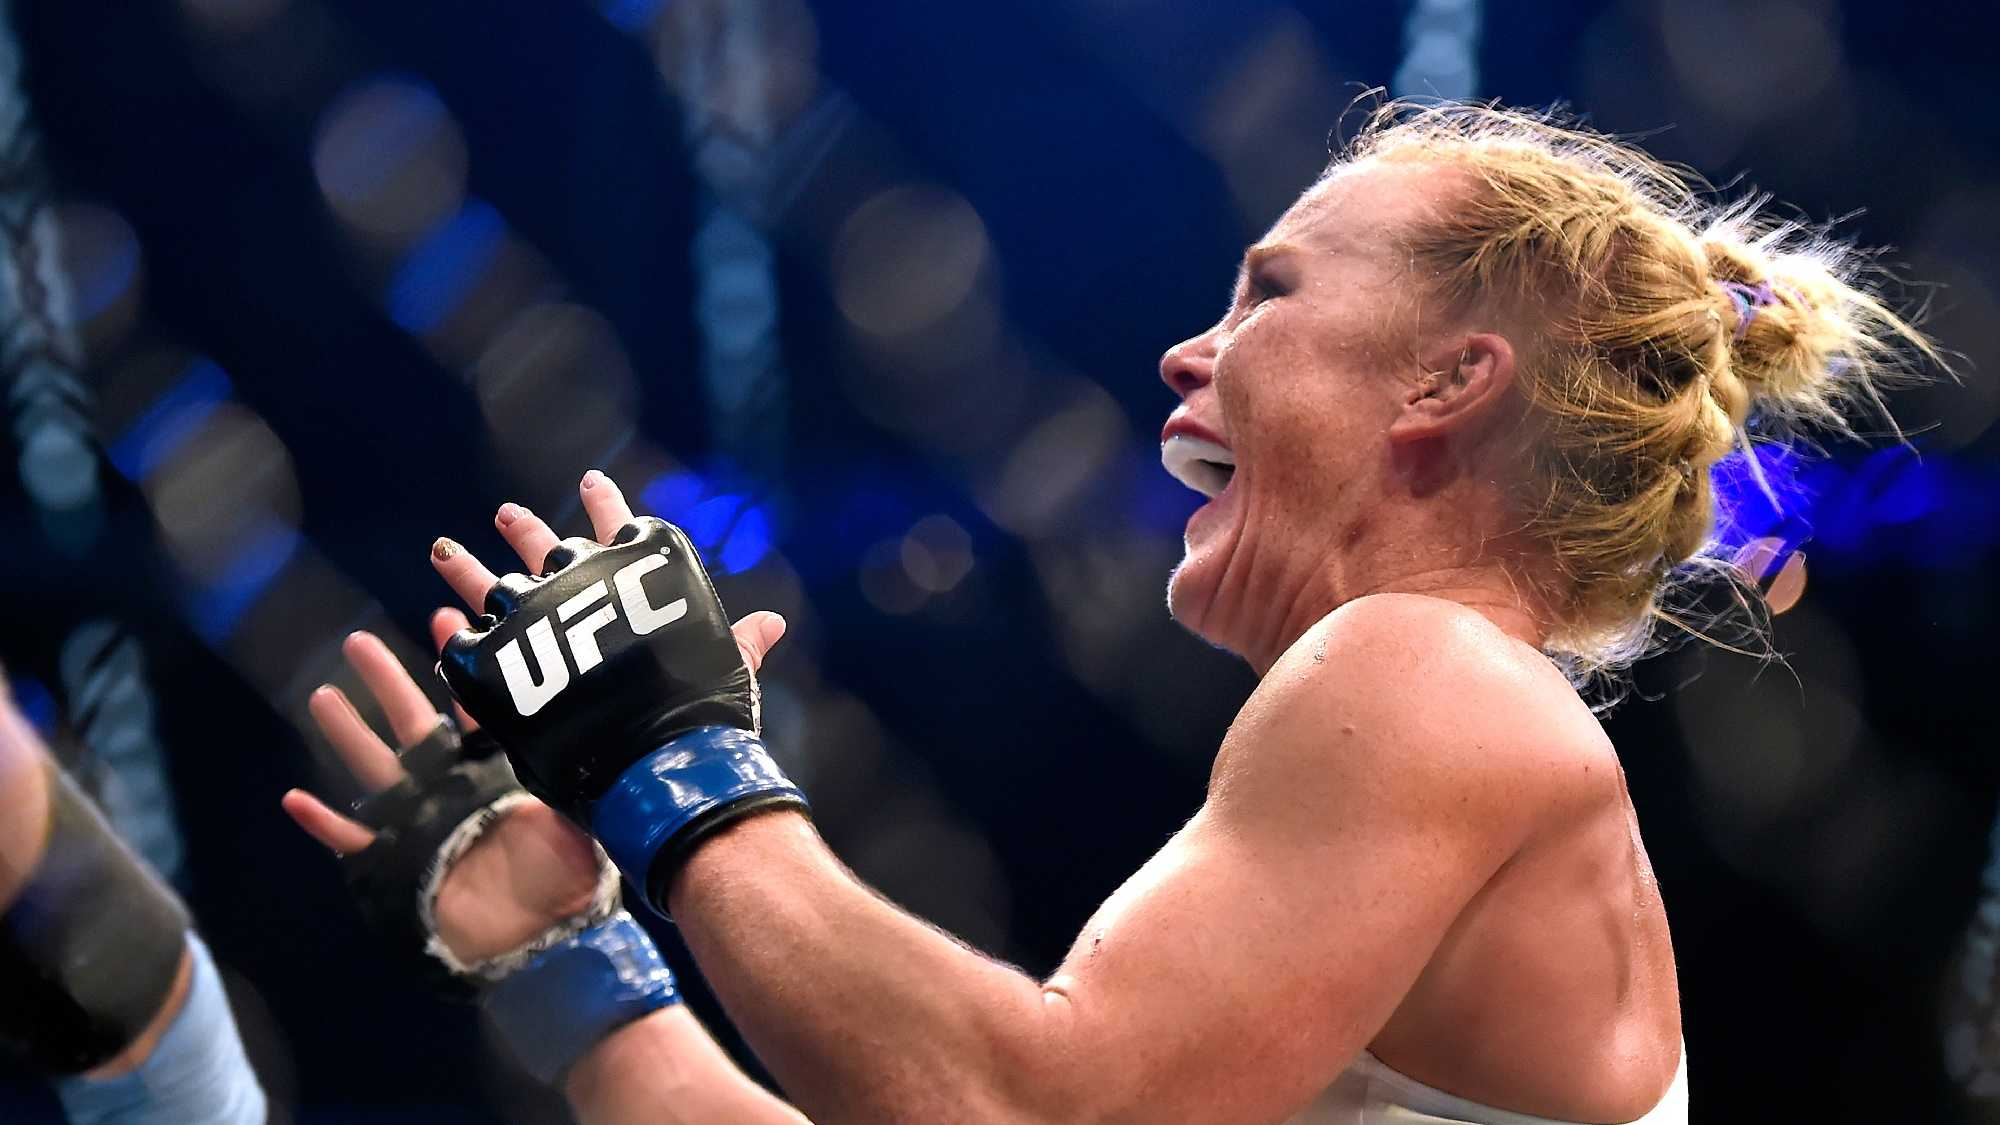 Holly Holm celebrates after defeating Ronda Rousey during their UFC 193 bantamweight title fight in Melbourne, Australia, Sunday, Nov. 15, 2015. (AP Photo/Andy Brownbill)